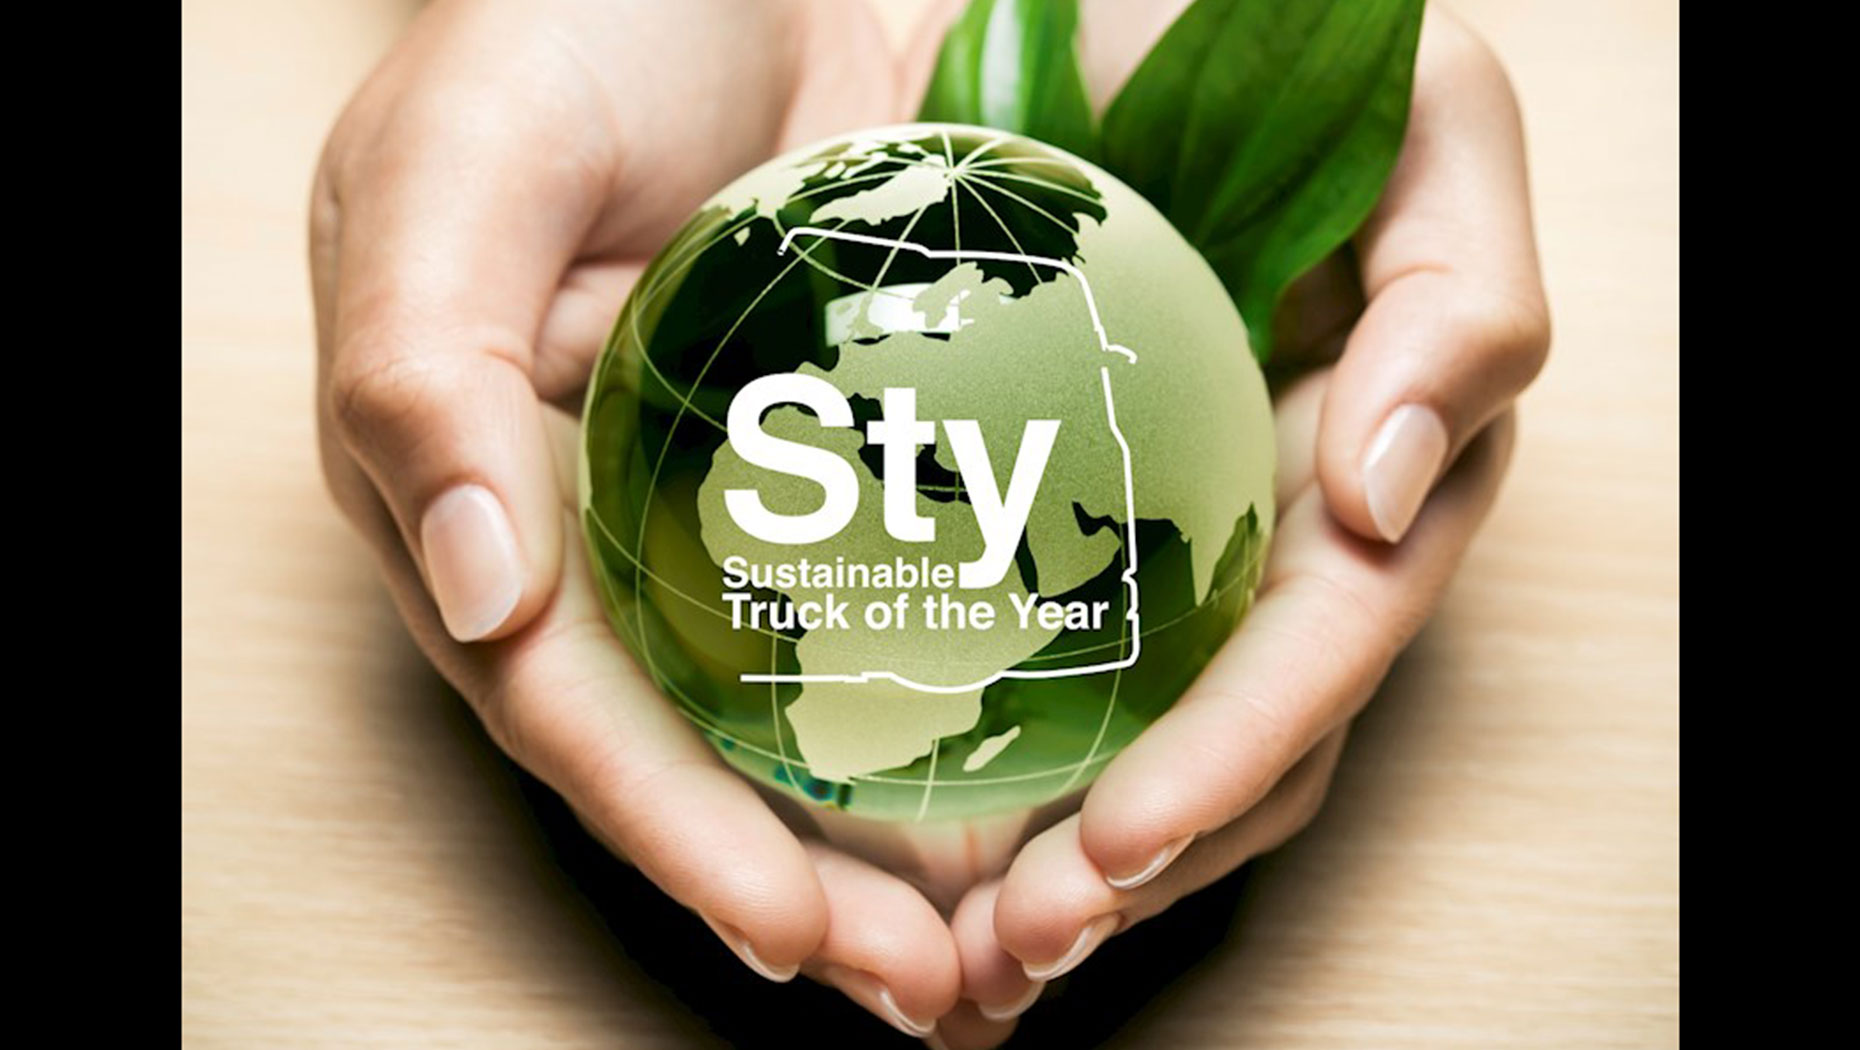 Volvo Trucks remporte le prix Sustainable Truck of the Year 2018